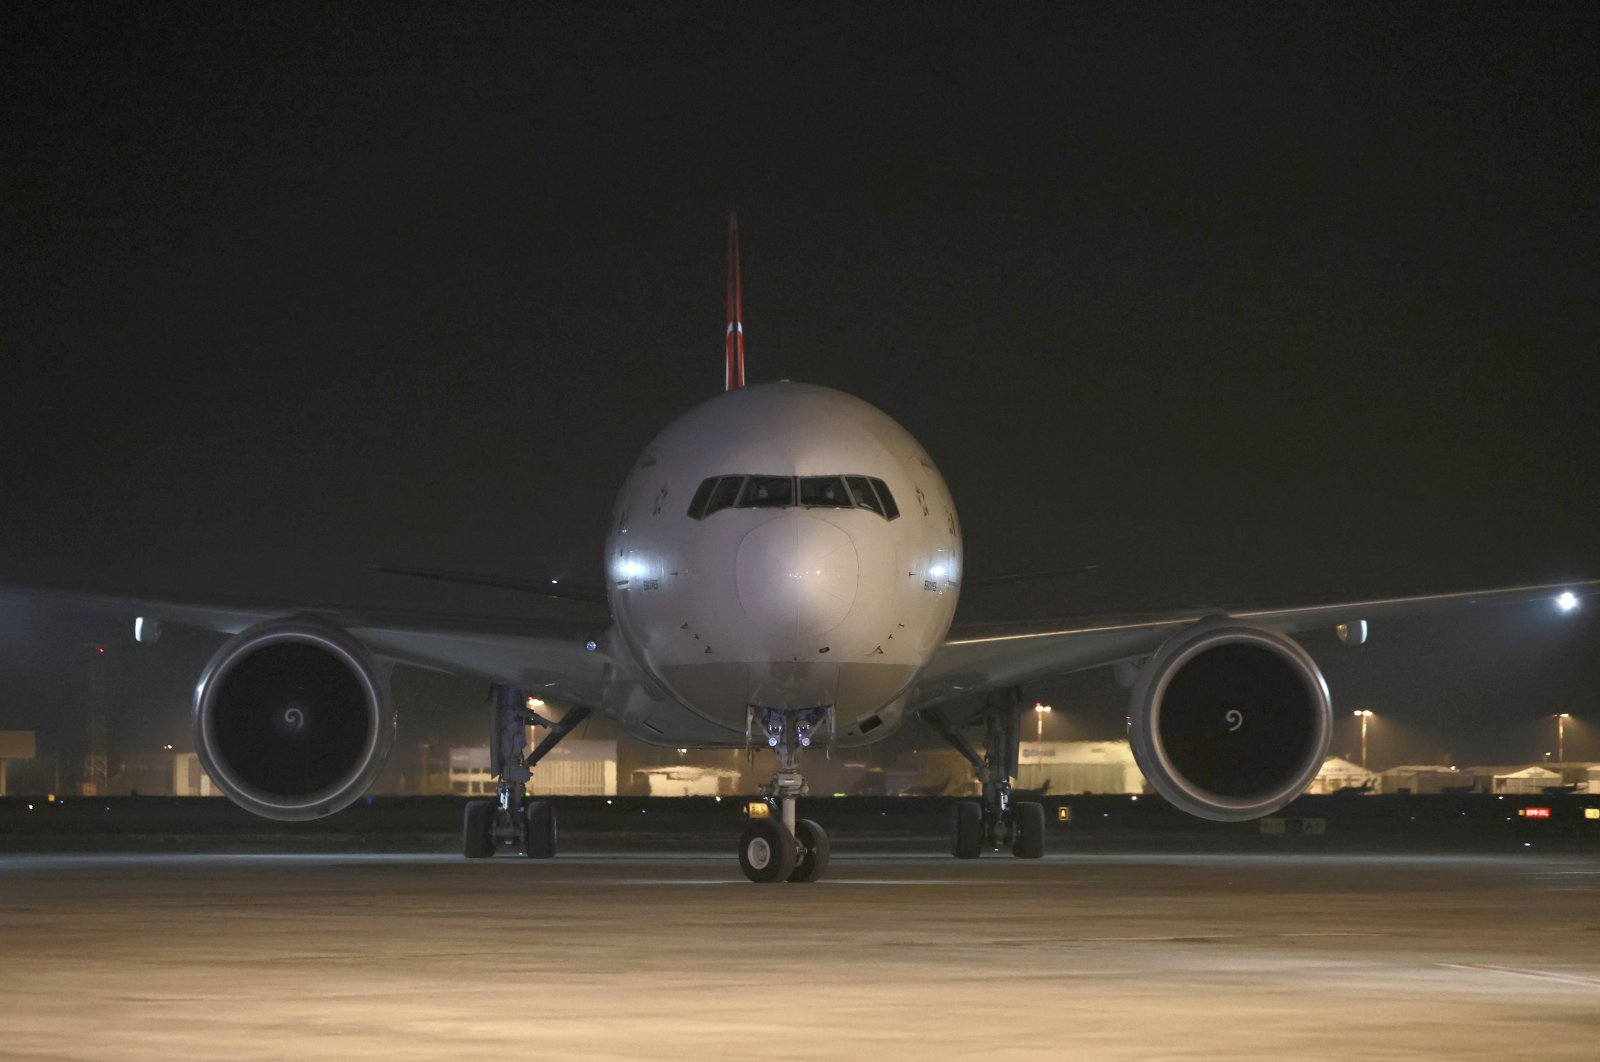 A Turkish Airlines plane loaded with the first batch of COVID-19 vaccine, CoronaVac, lands at Esenboğa Airport, in the capital Ankara, Turkey, Dec. 30, 2020. (Turkish Health Ministry via AP)